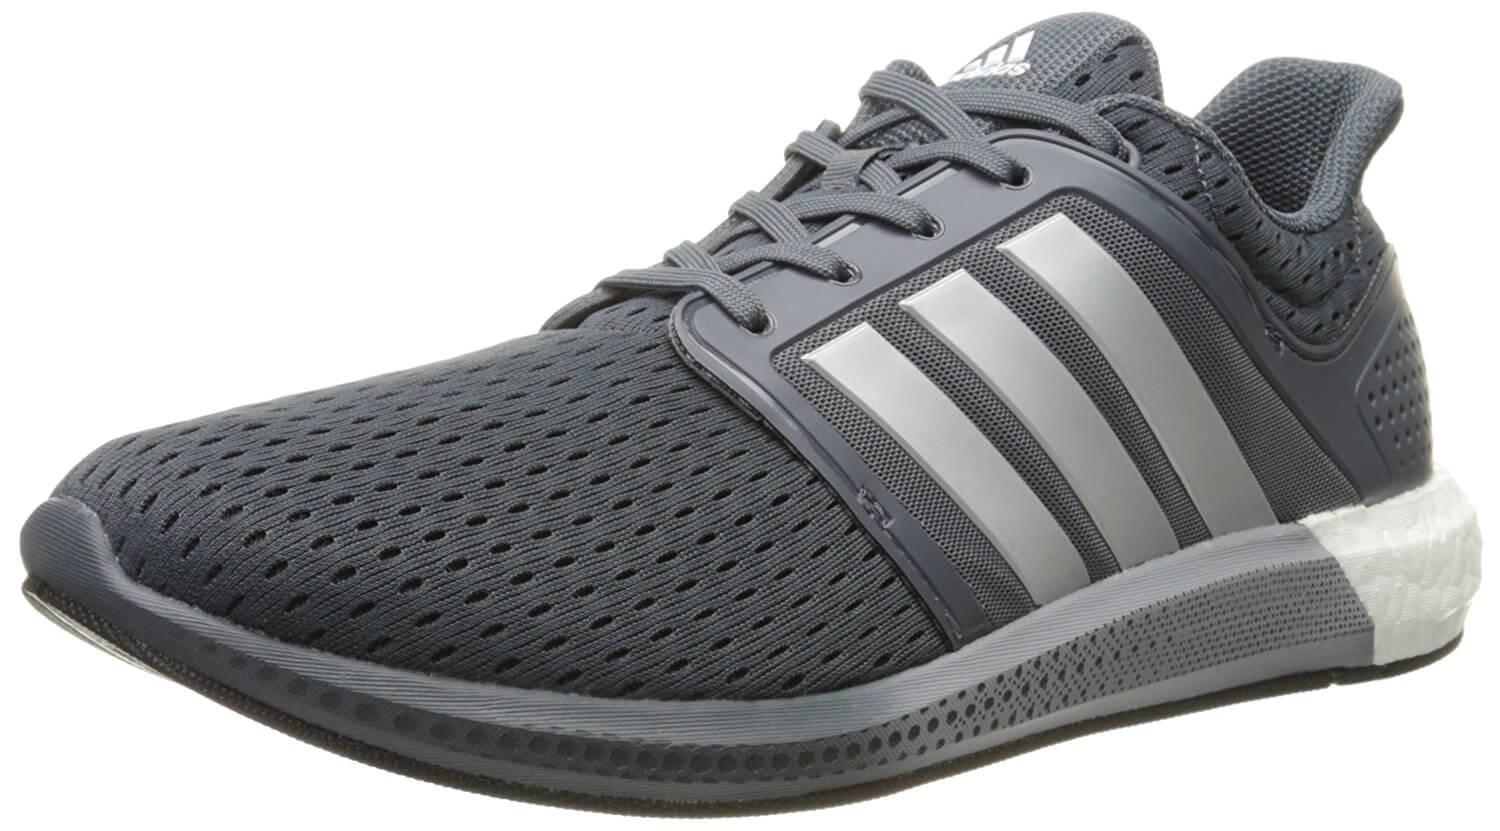 pretty nice 01846 f23a8 Adidas Solar Boost Reviewed - To Buy or Not in Mar 2019